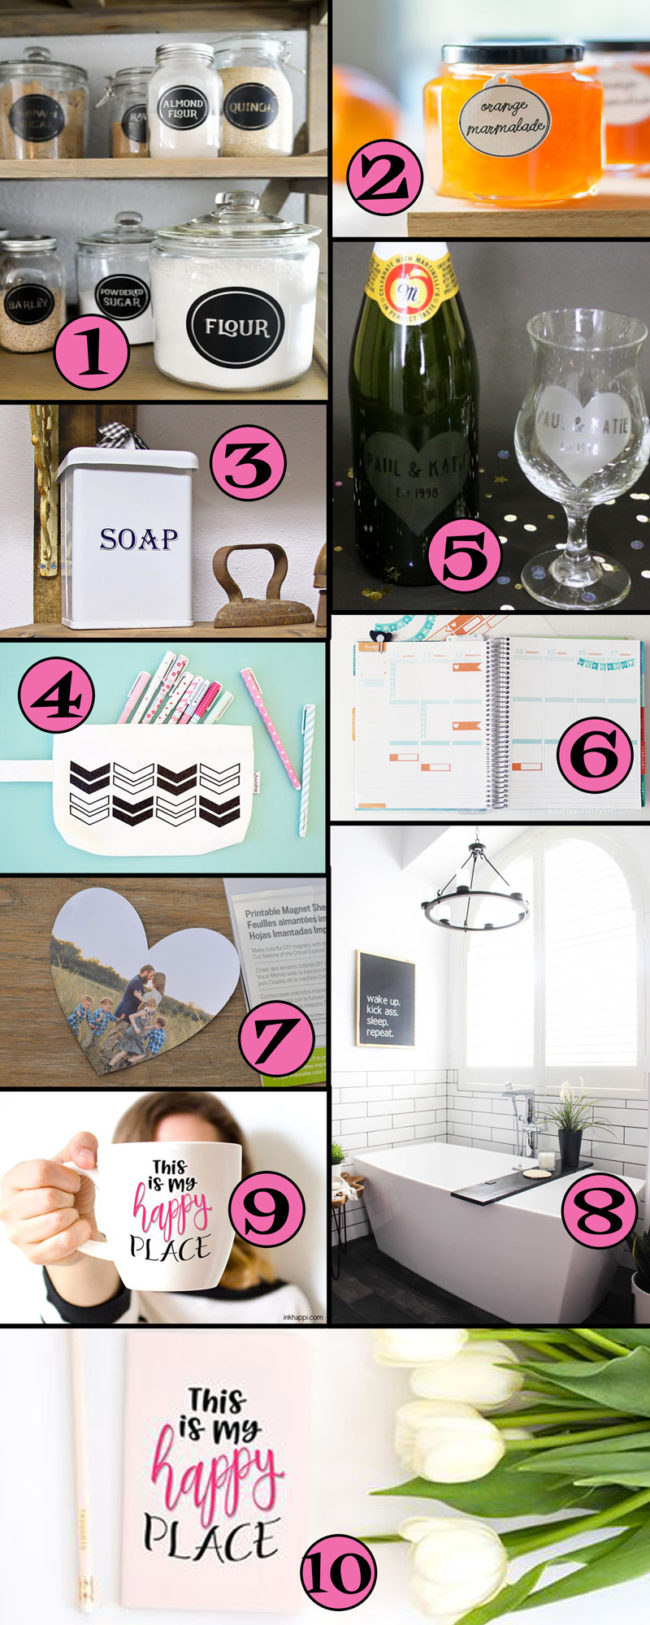 30 Cricut Project Ideas... The possibilities are endless!